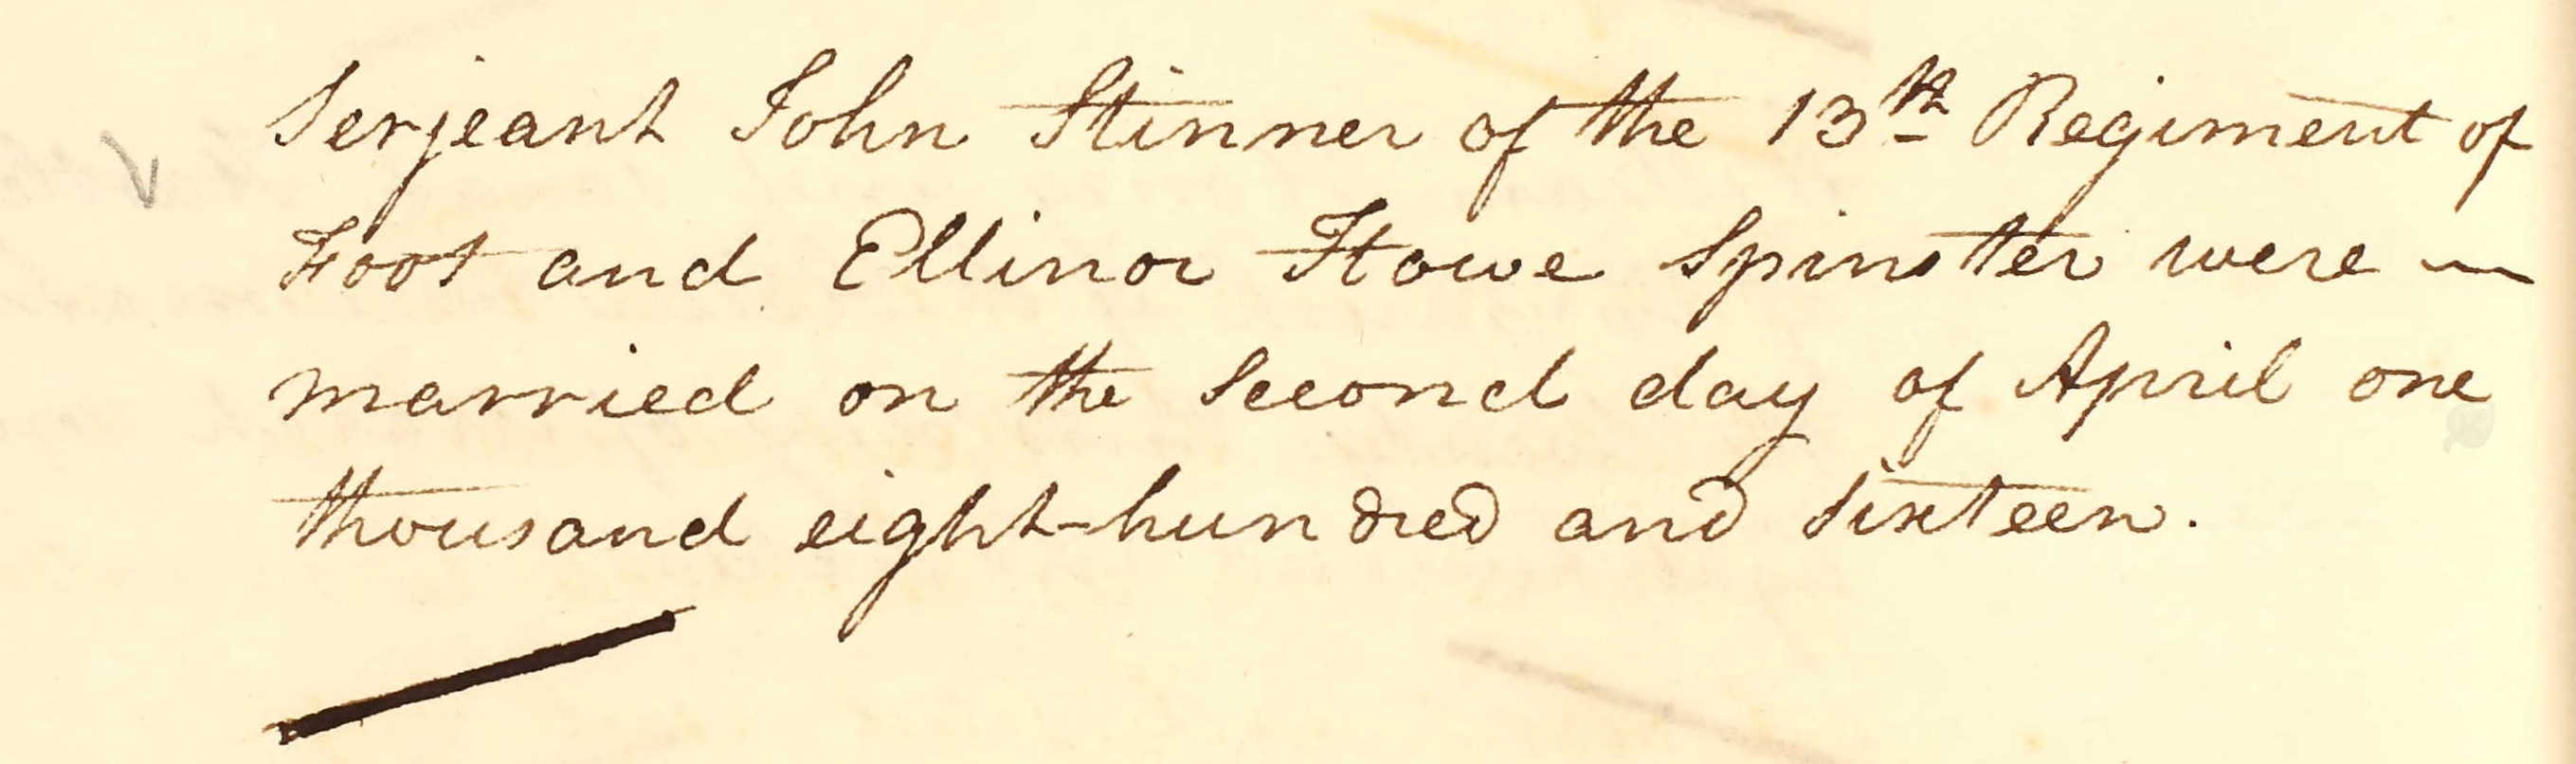 Marriage Entry for Sergeant John Stinner and Elinor Hill